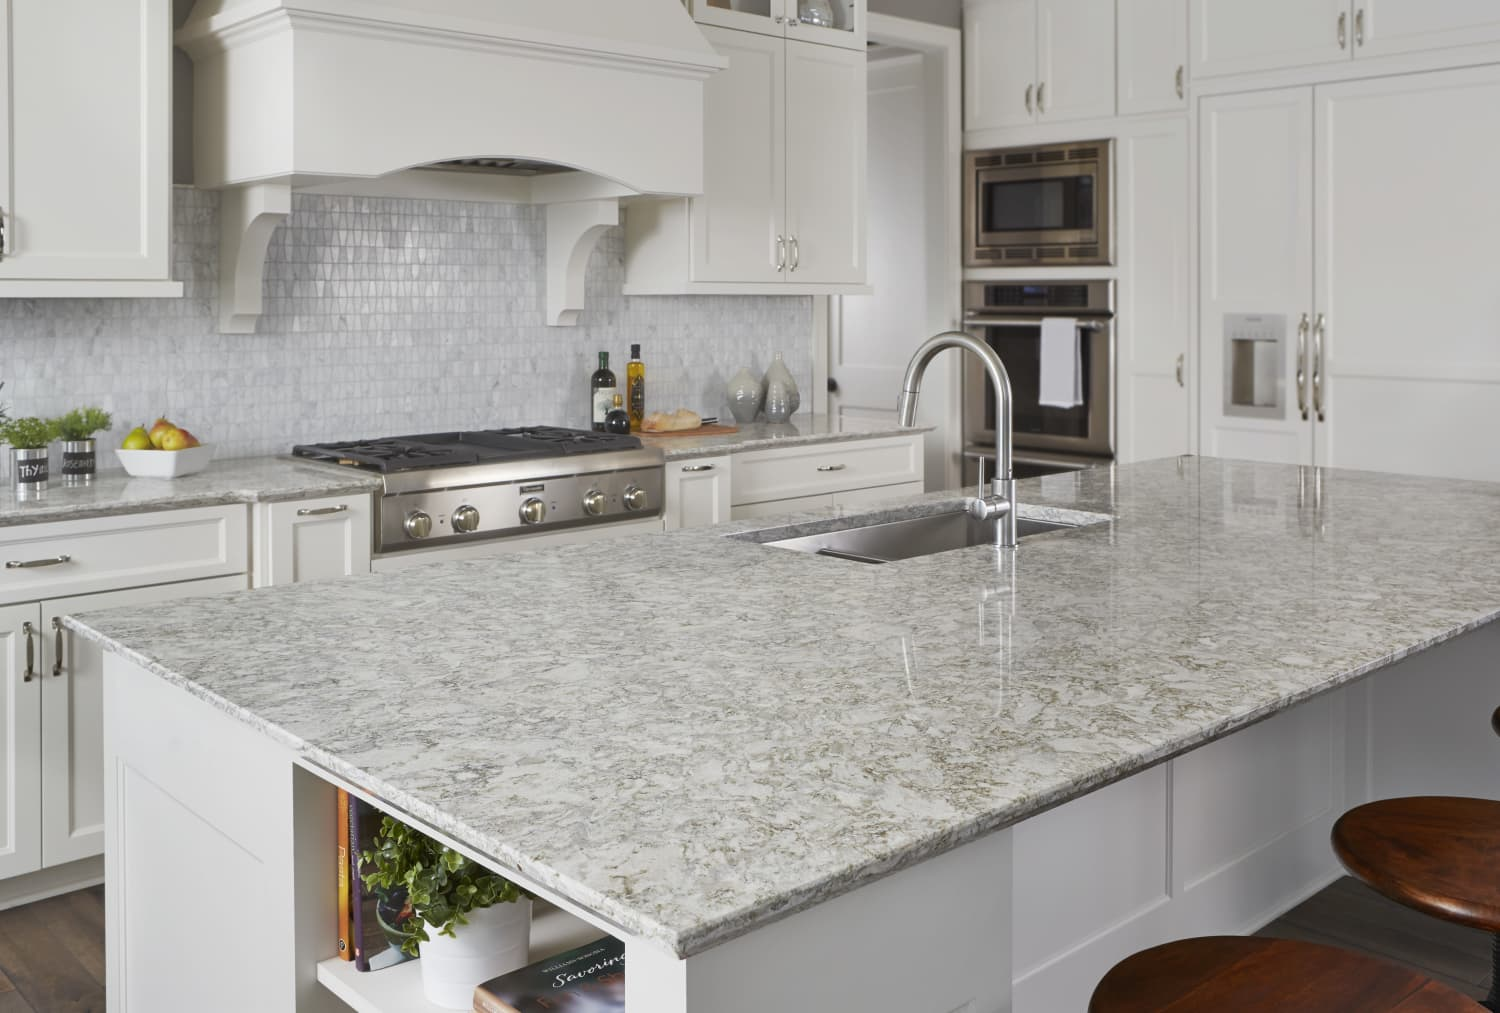 Quiz: Can You Guess What These Countertops Are Made Of?